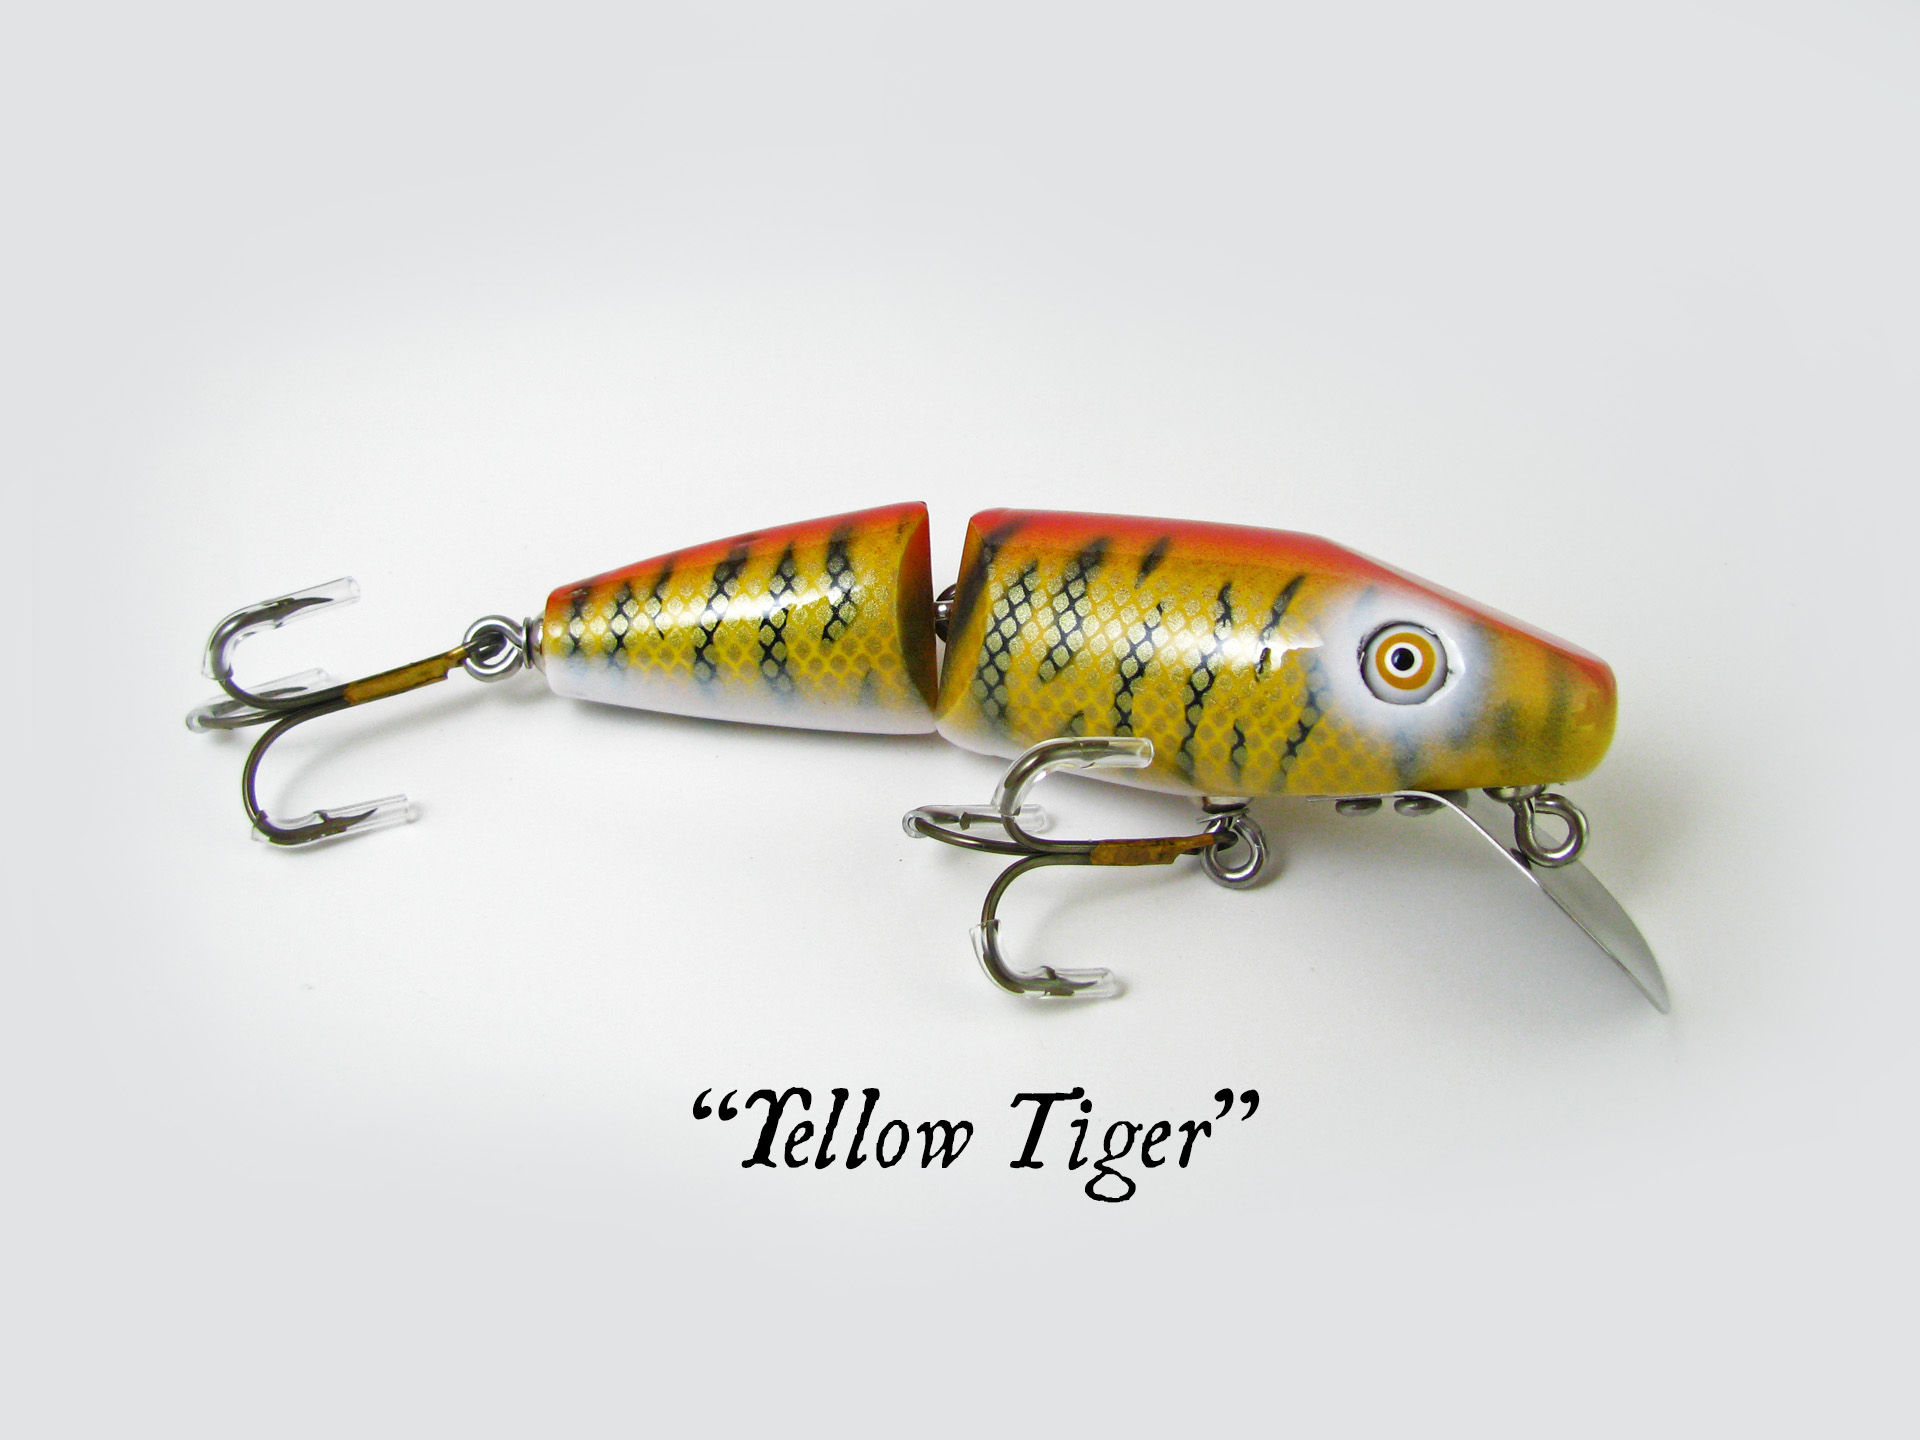 Super Shark_Yellow Tiger.jpg